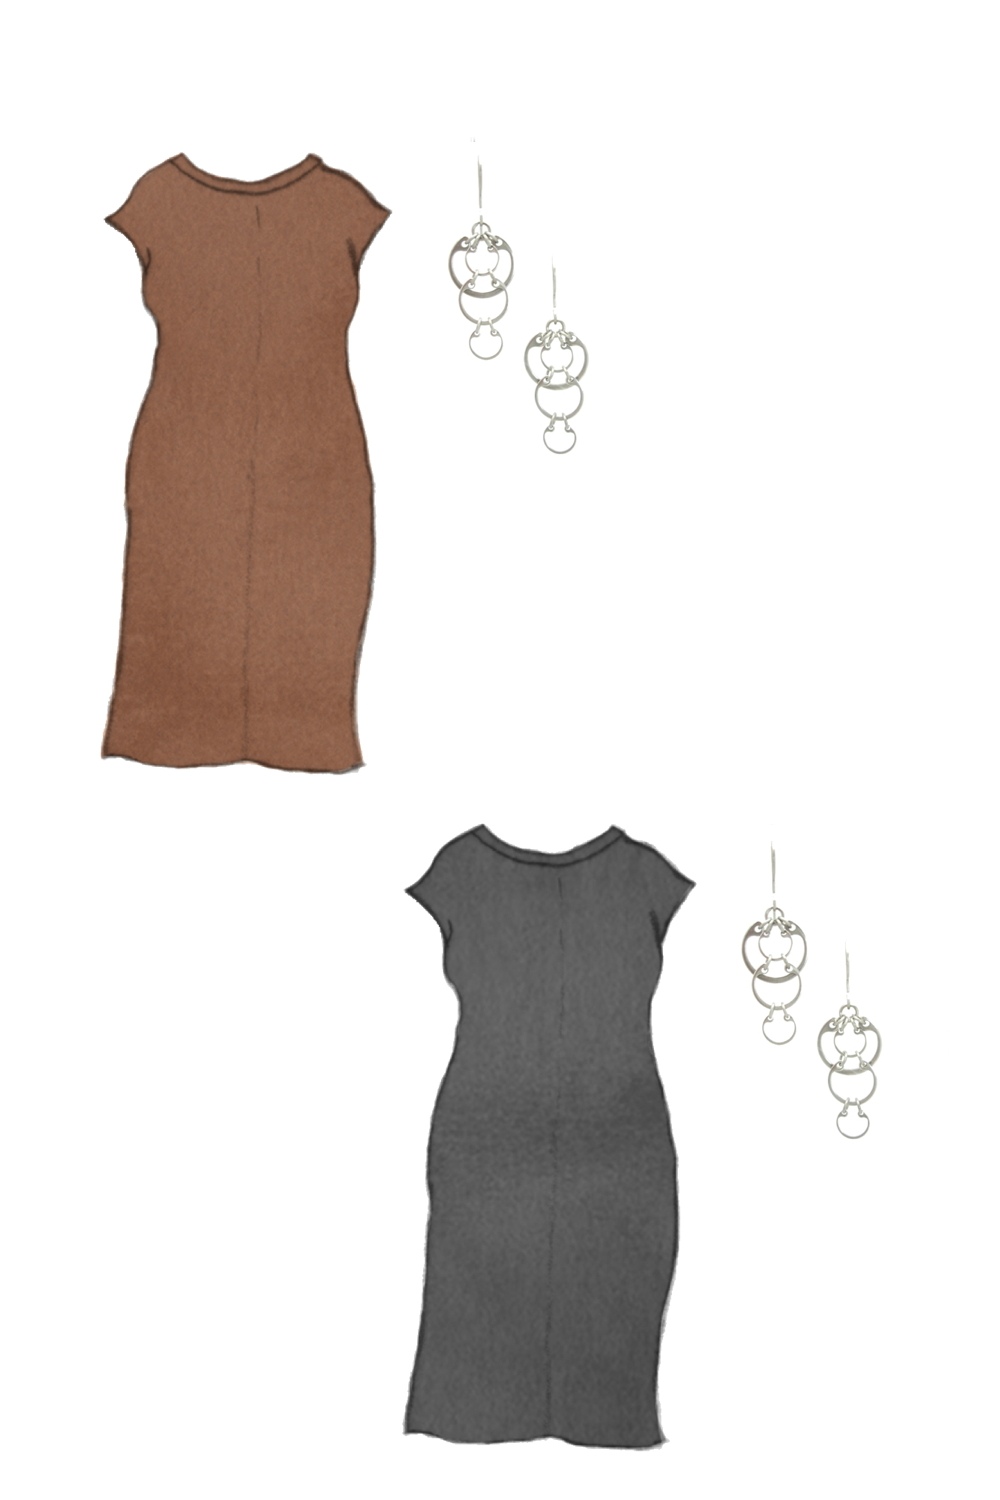 Style sketch of Everlane's Luxe Cotton Side-Slit Tee Dress in black and brown, with Wraptillion's Small Cascading Circles Earrings (delicate short linked circles dangles).